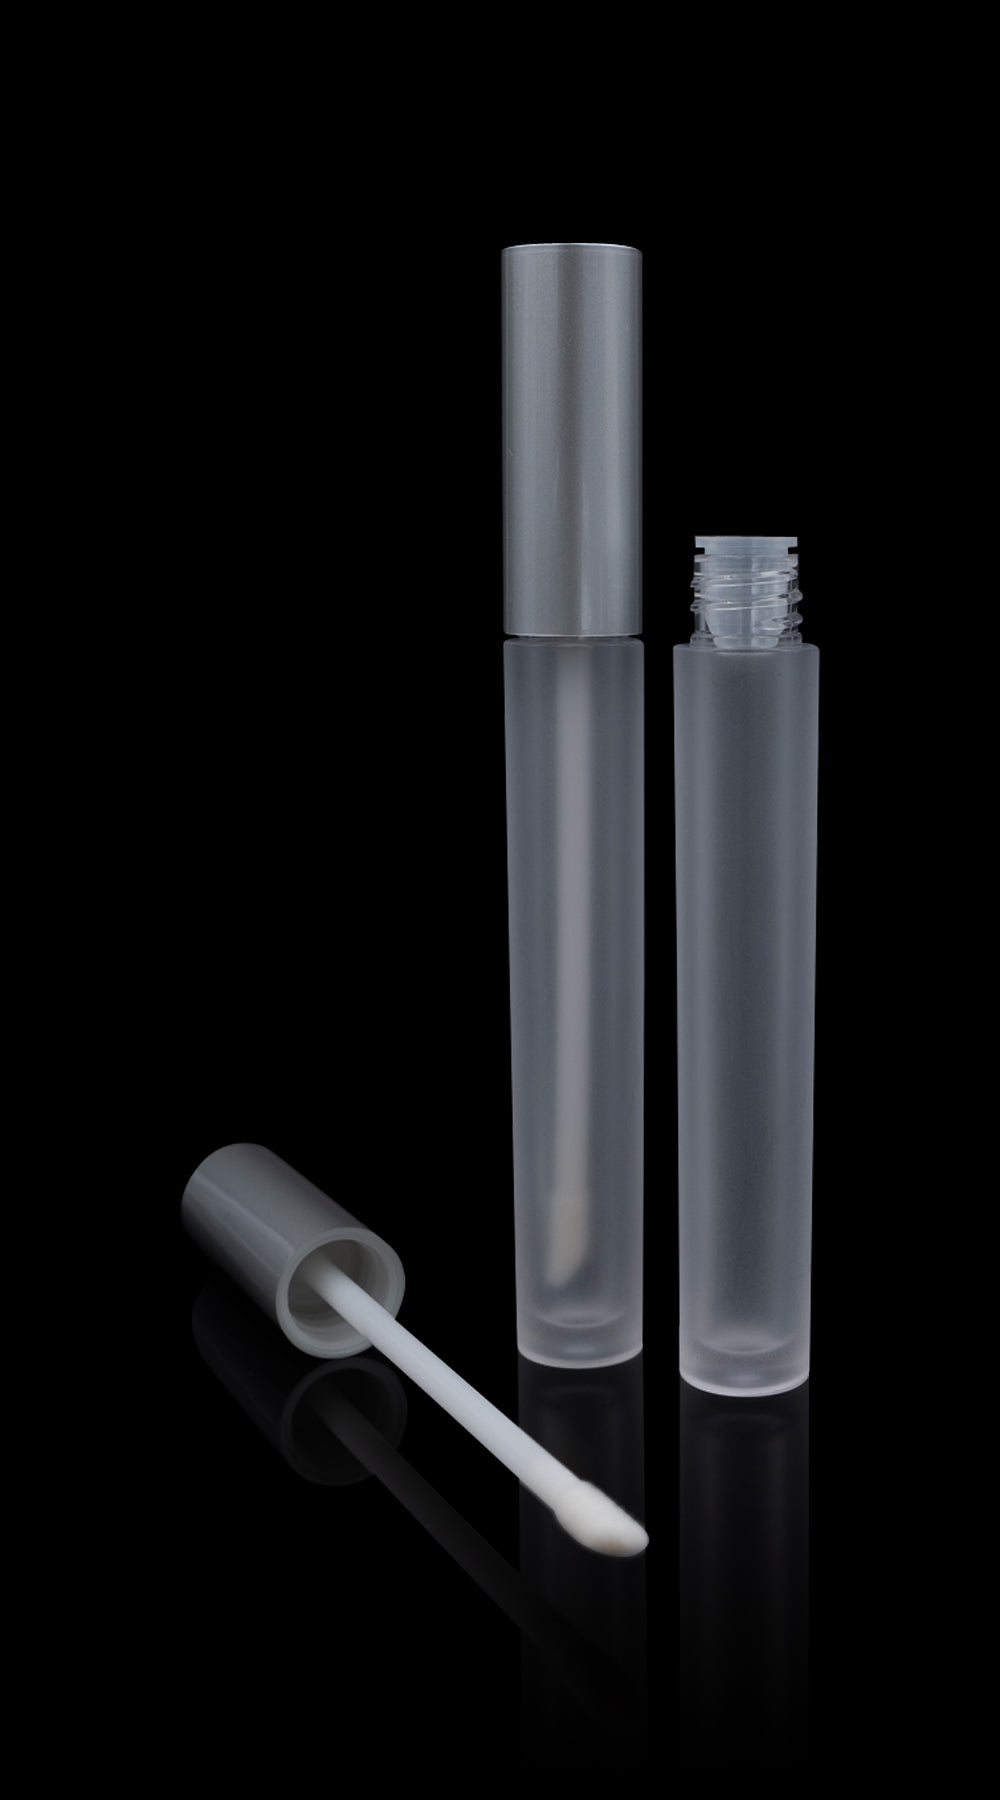 Vibe Lip Gloss Container Matte Silver Cap with Frosted Bottle - Cosmetic Packaging Now